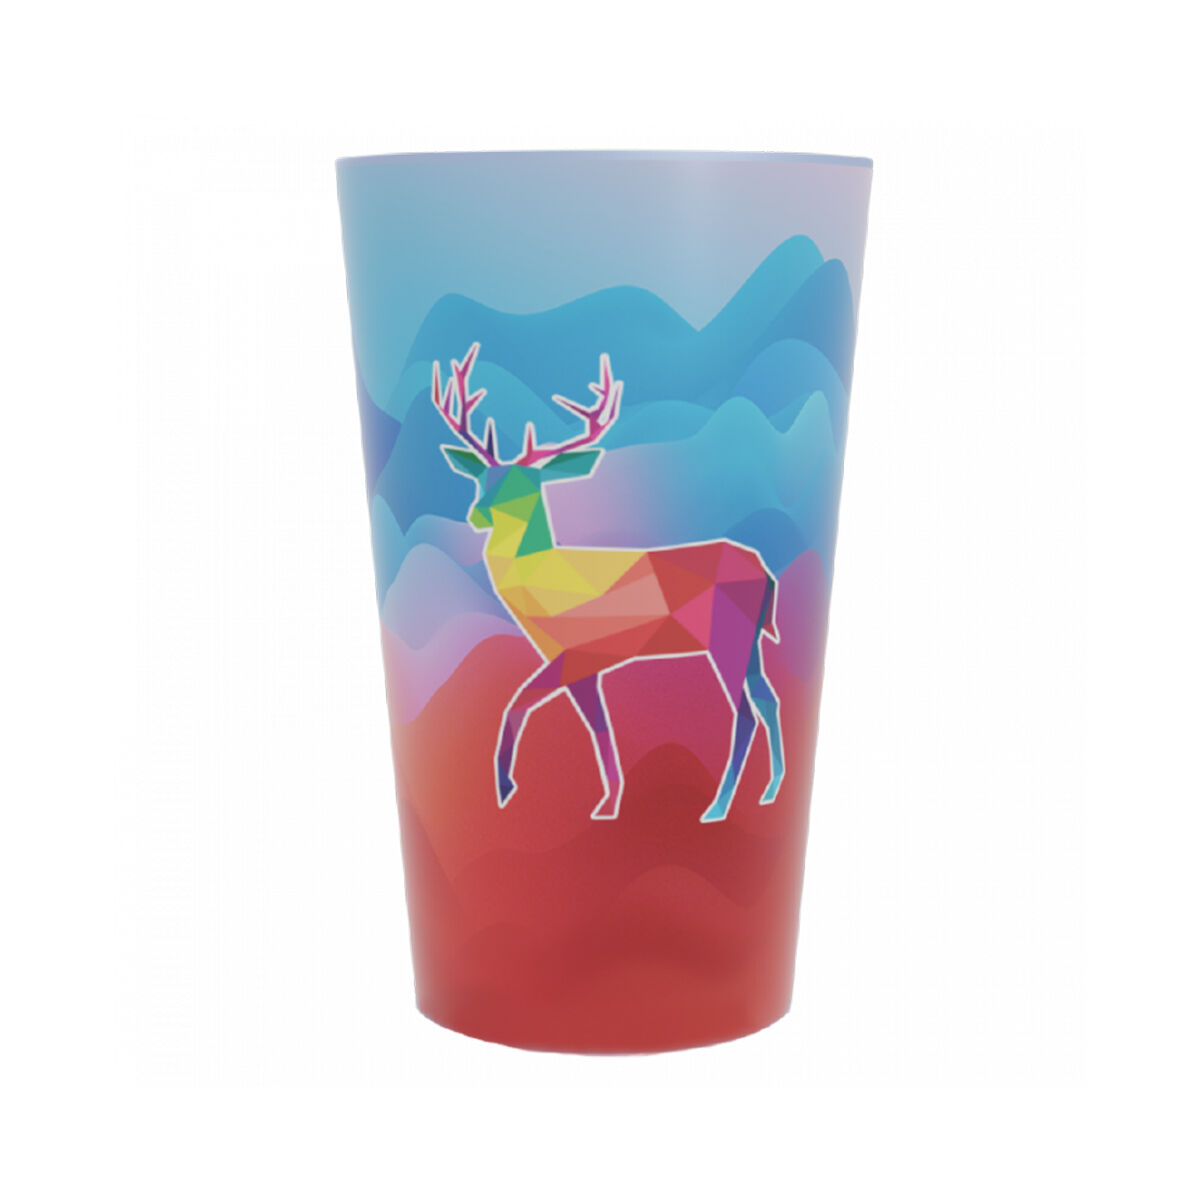 Reusable Plastic Cups printed full colour